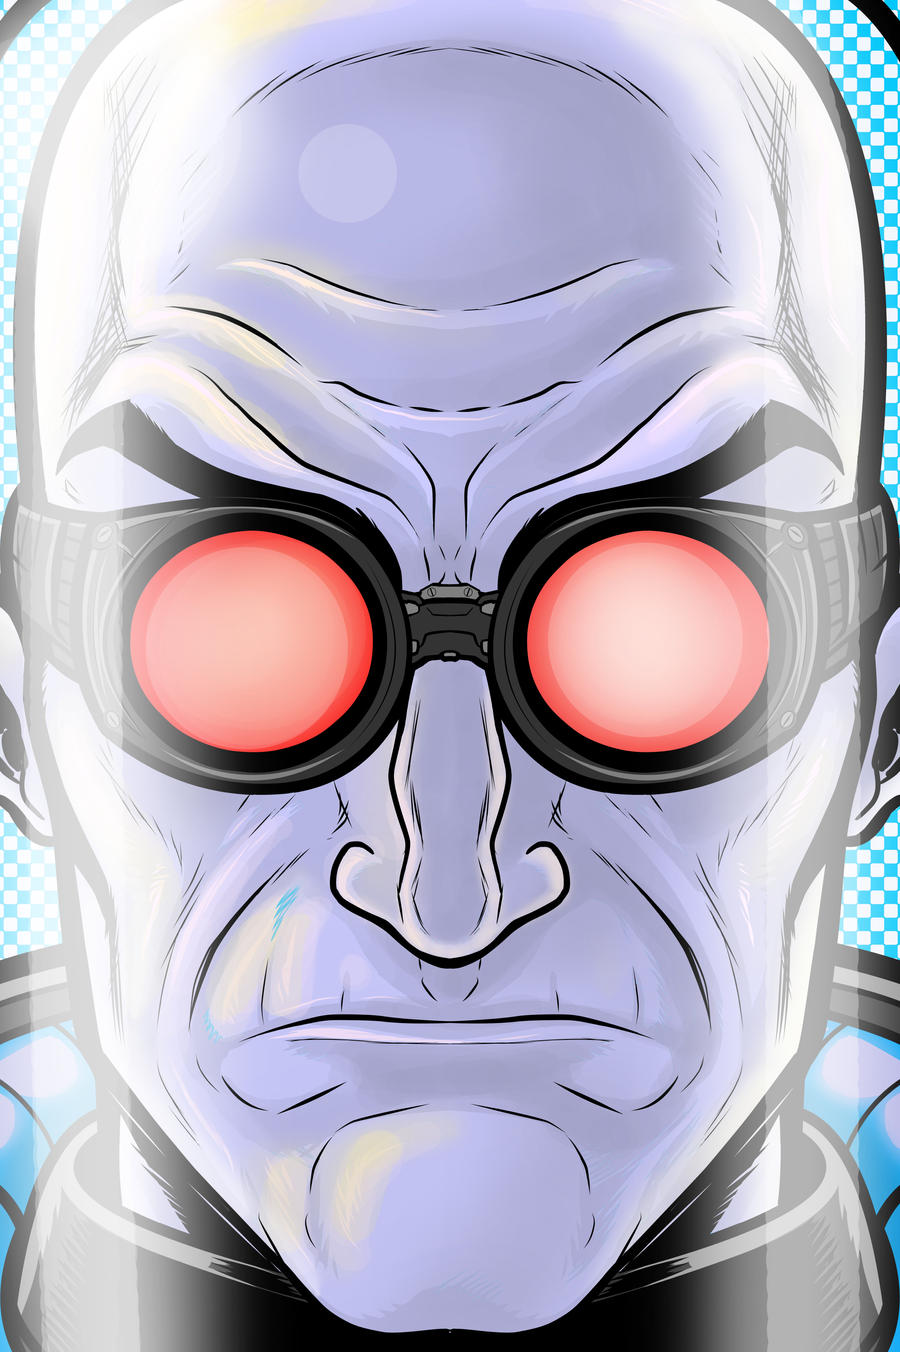 MR FREEZE Portrait Series by Thuddleston